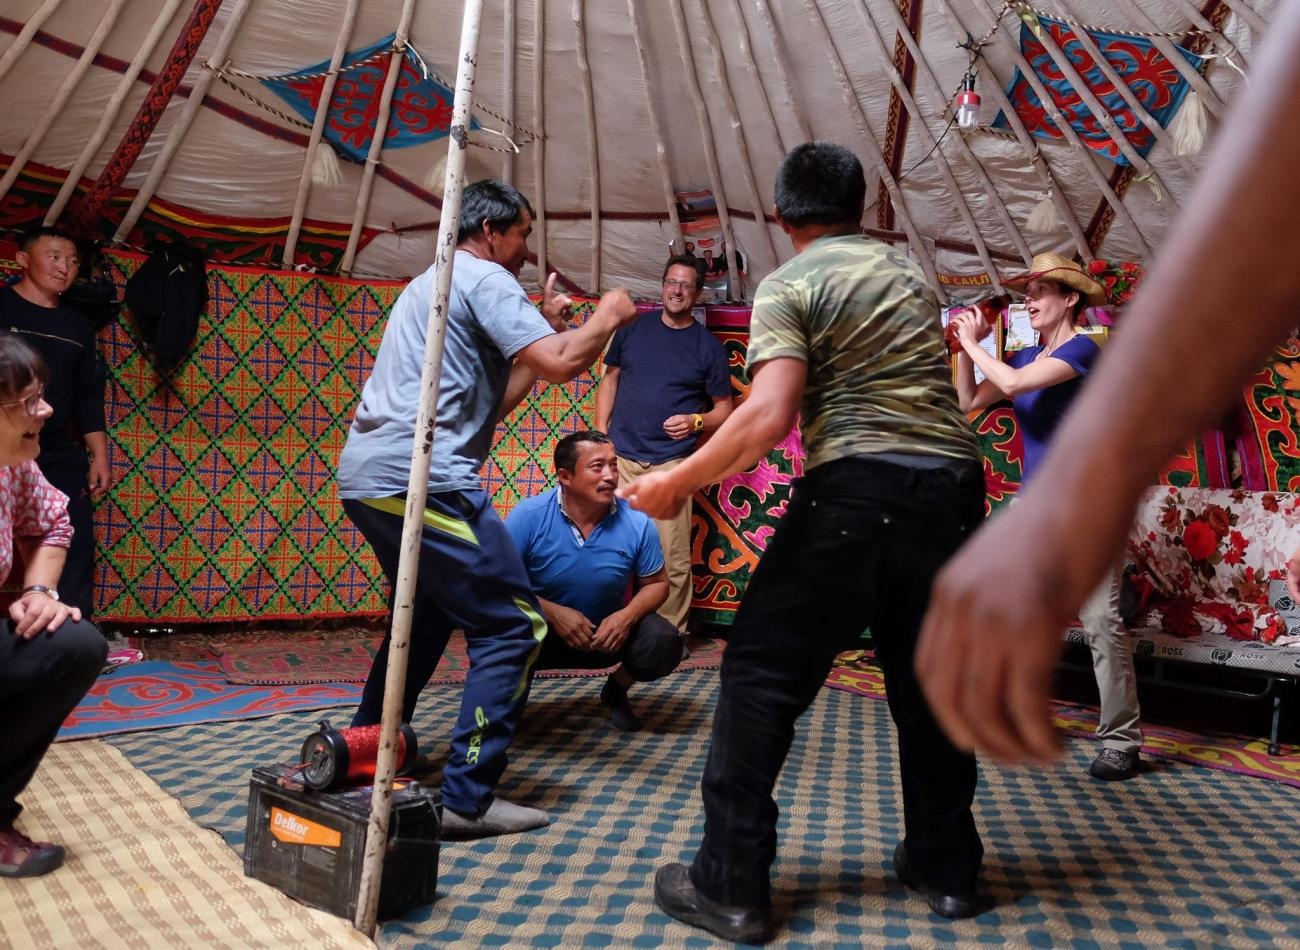 Kazakh Mongolian Dance Party - The Insatiable Traveler, Photo by Clare Rowntree.jpeg